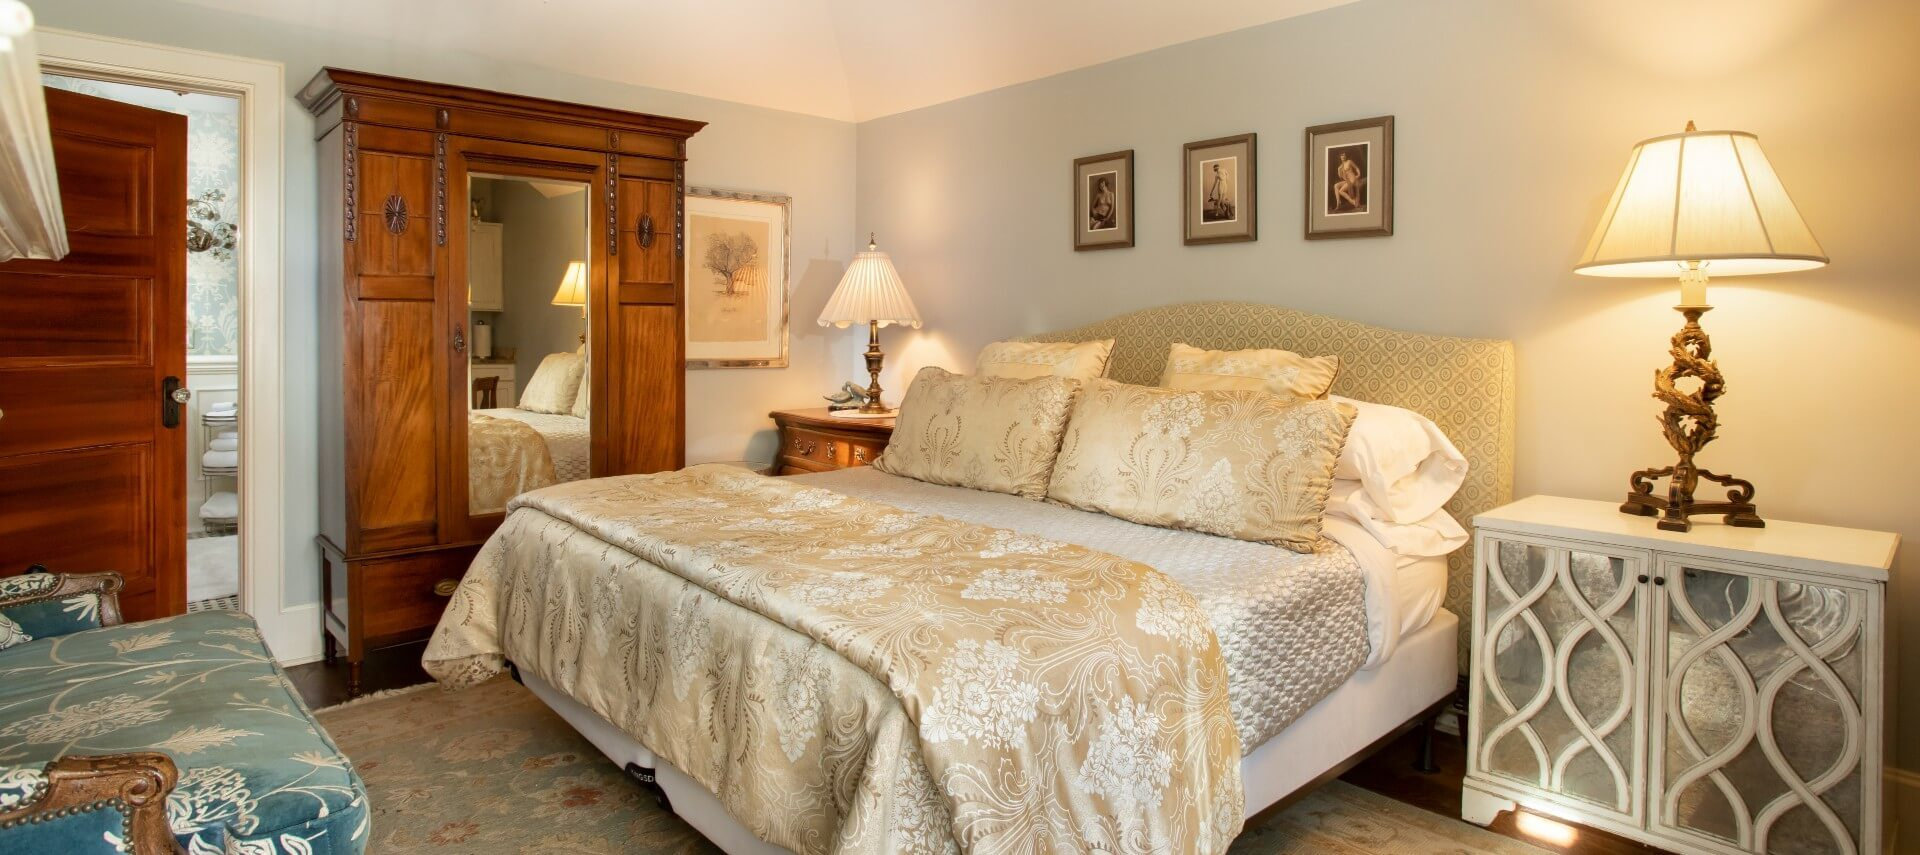 Bedroom with king size bed, tall armoire with mirror, sitting chair and bedside tables with lamps